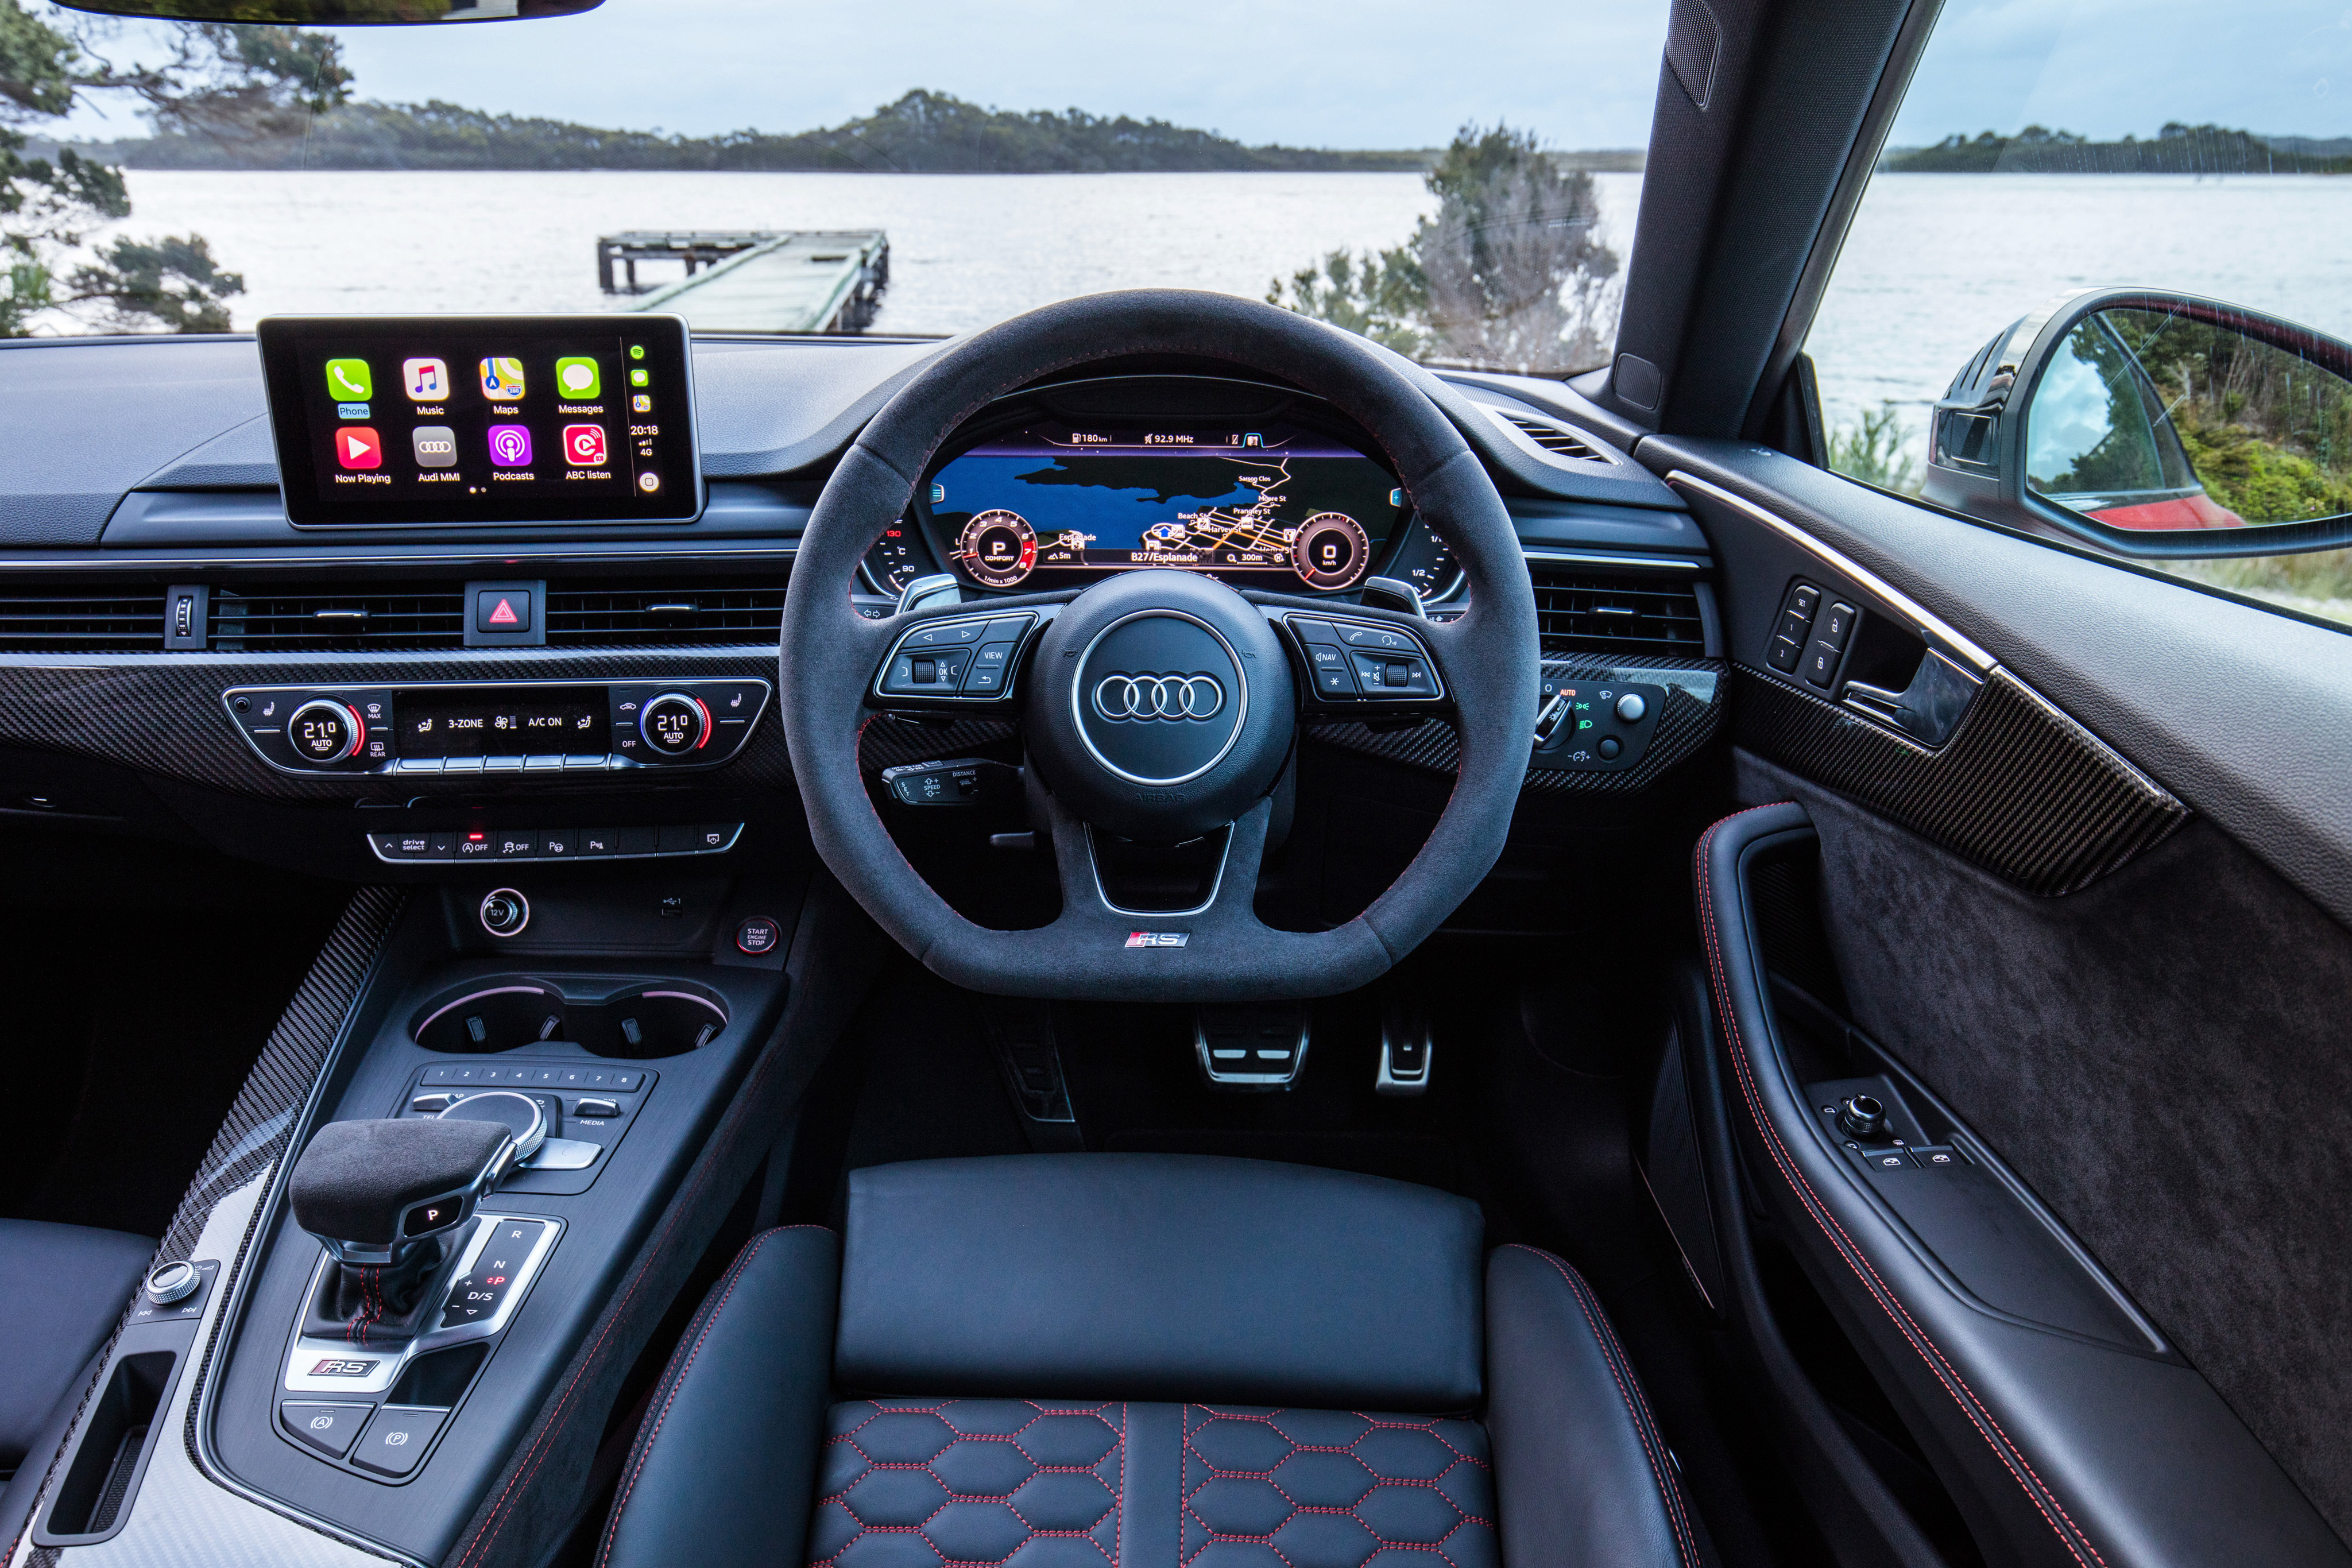 Audi Rs5 Coupe Interior 4k, HD Cars, 4k Wallpapers, Images ...